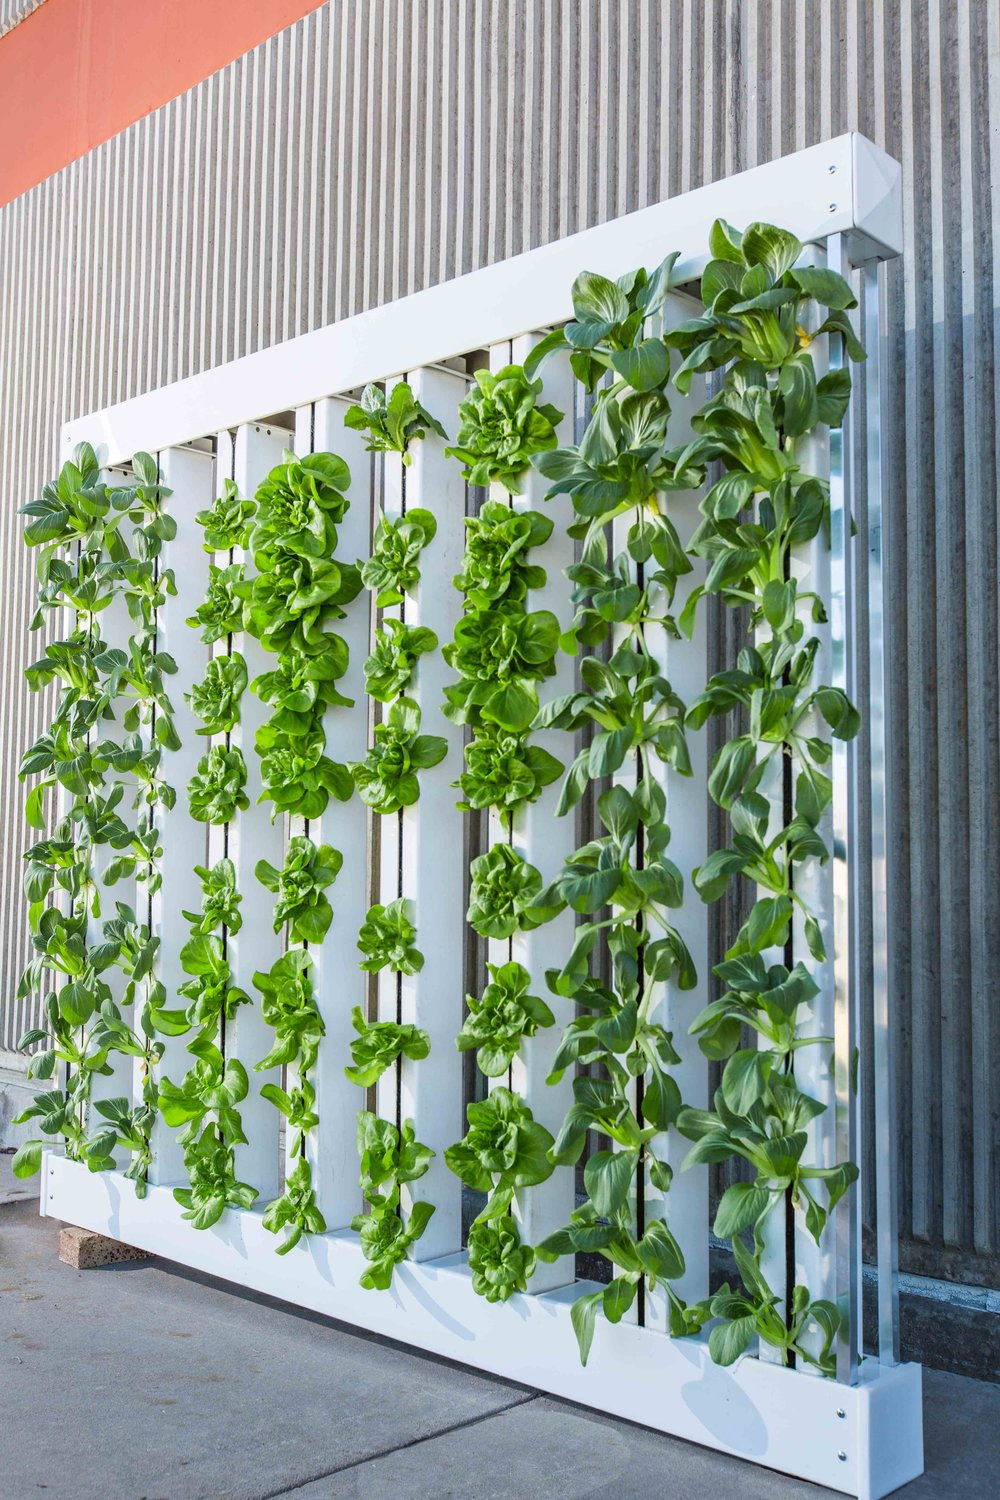 vertical-farm-916337.jpg